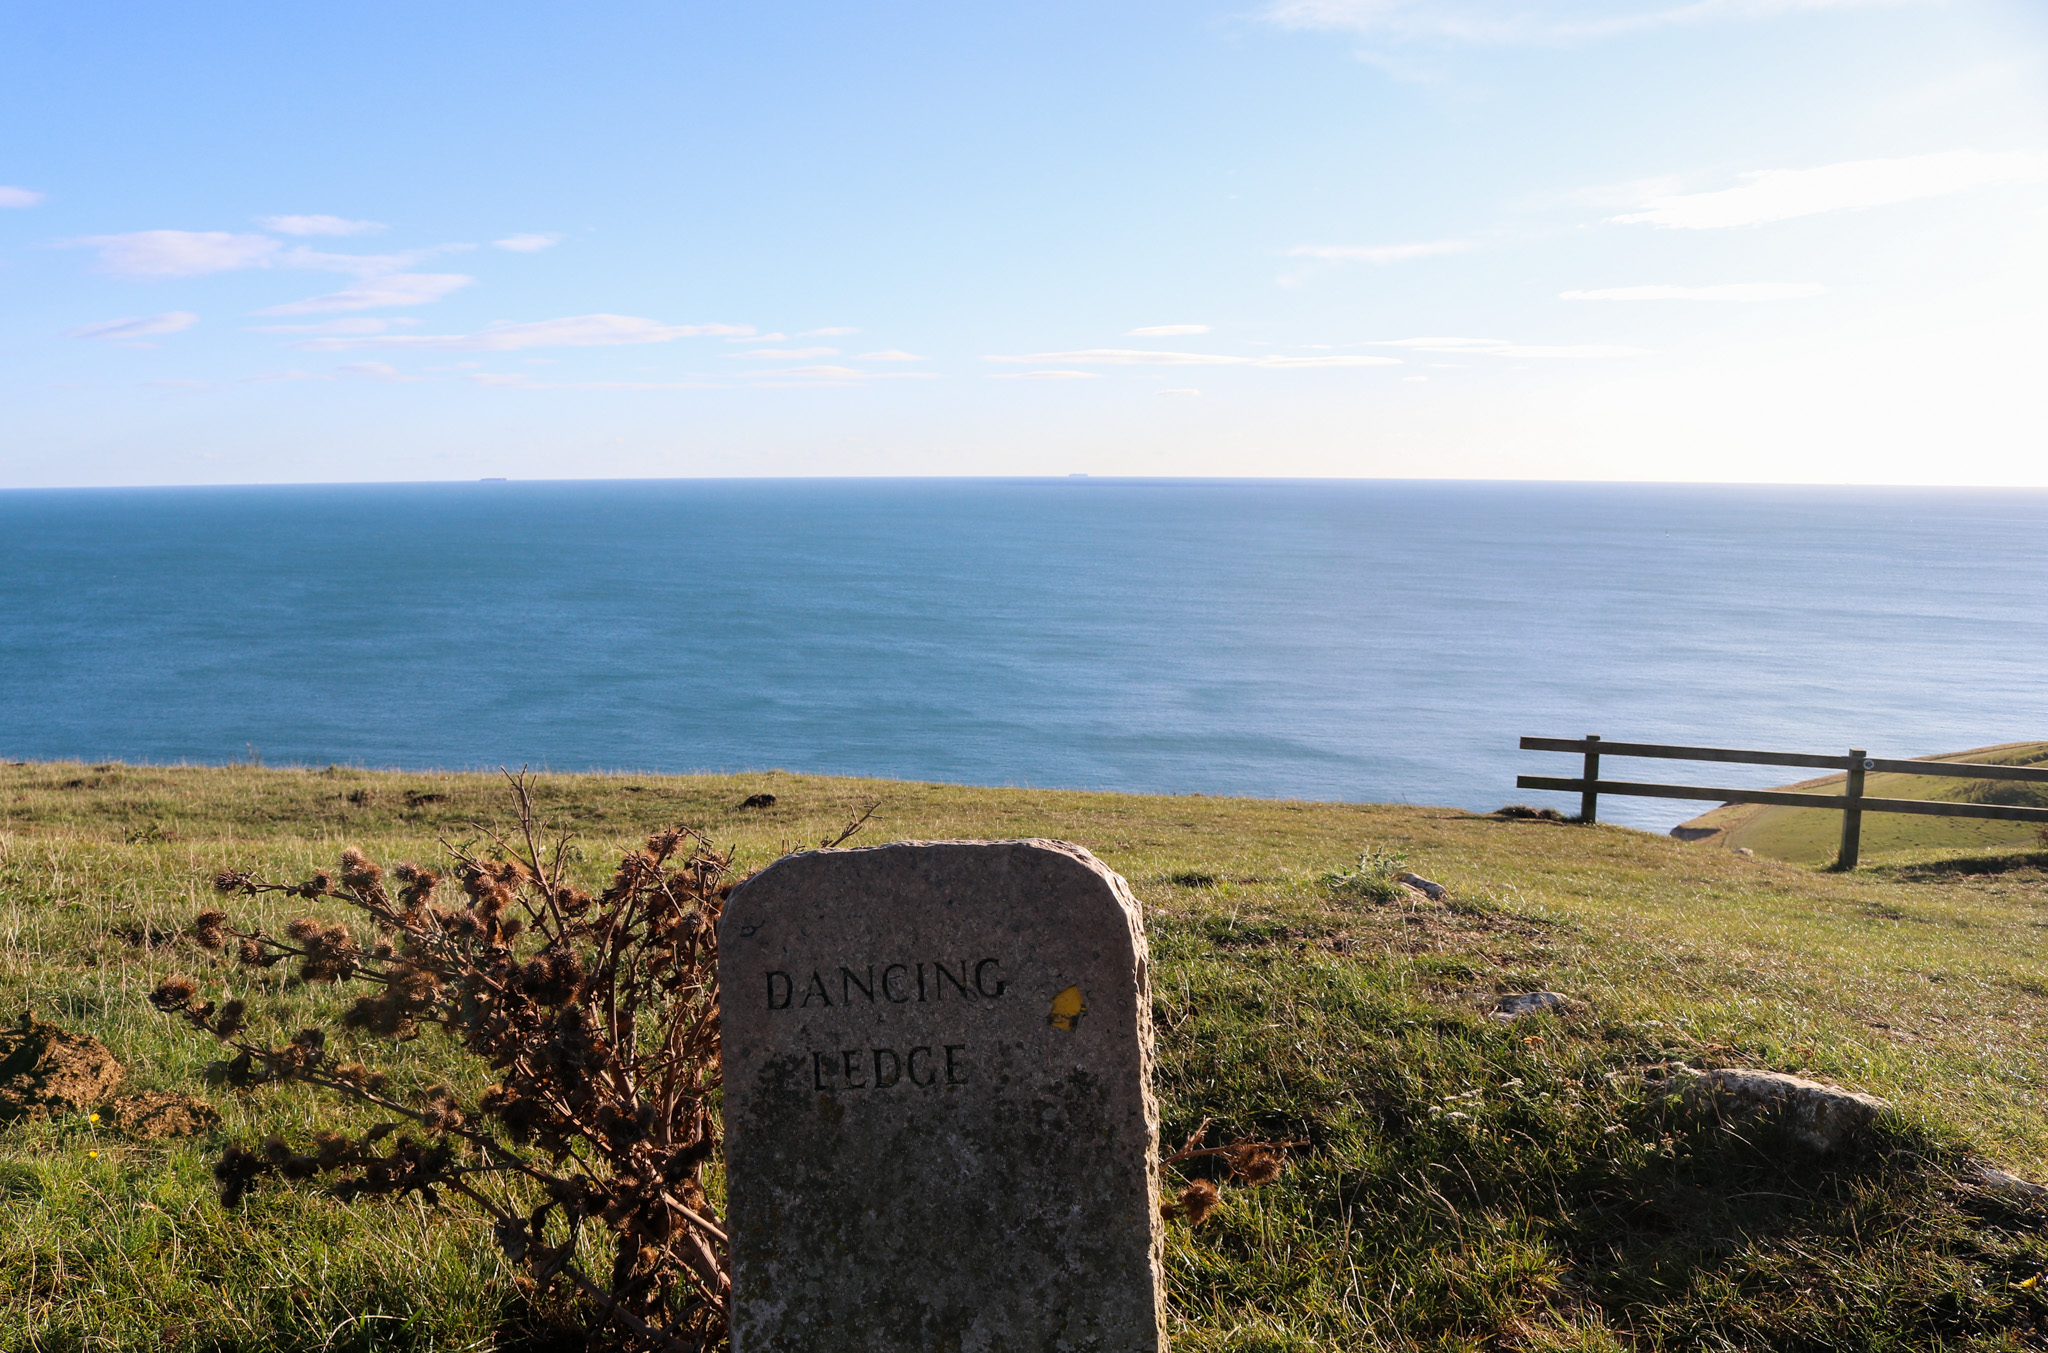 Stone sign at Dancing Ledge